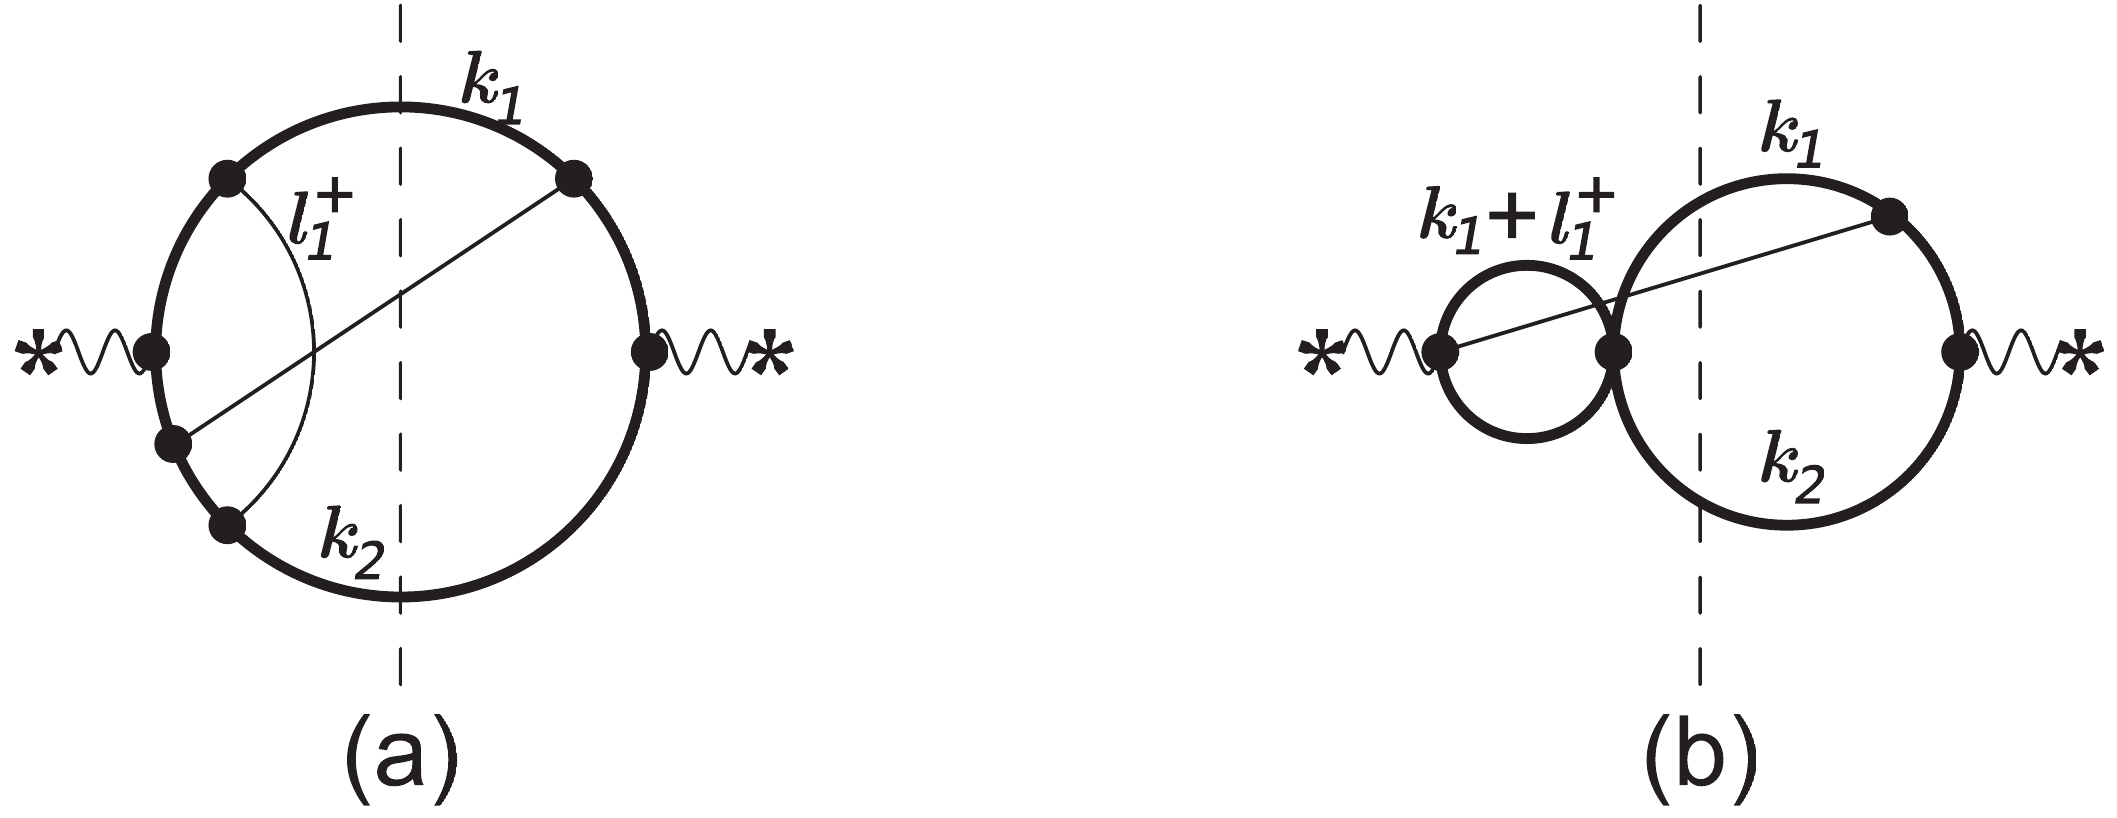 Calculation Of Feynman Loop Integration And Phase Space